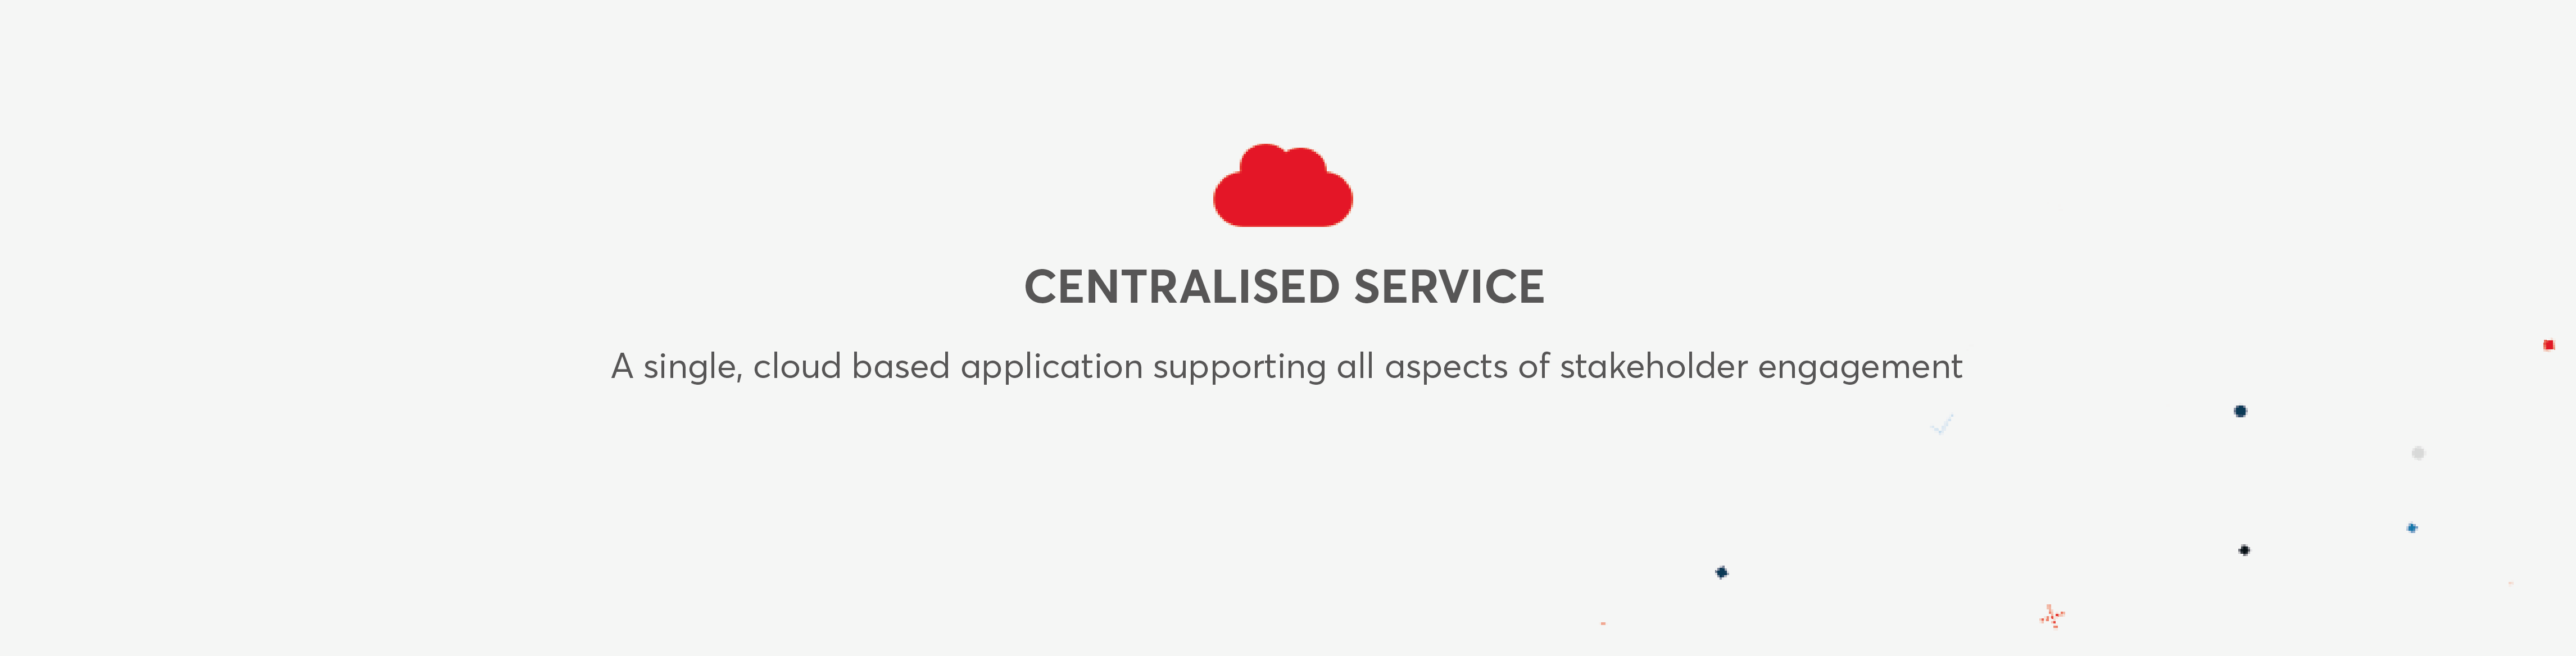 CENTRALISED-SERVICE.png